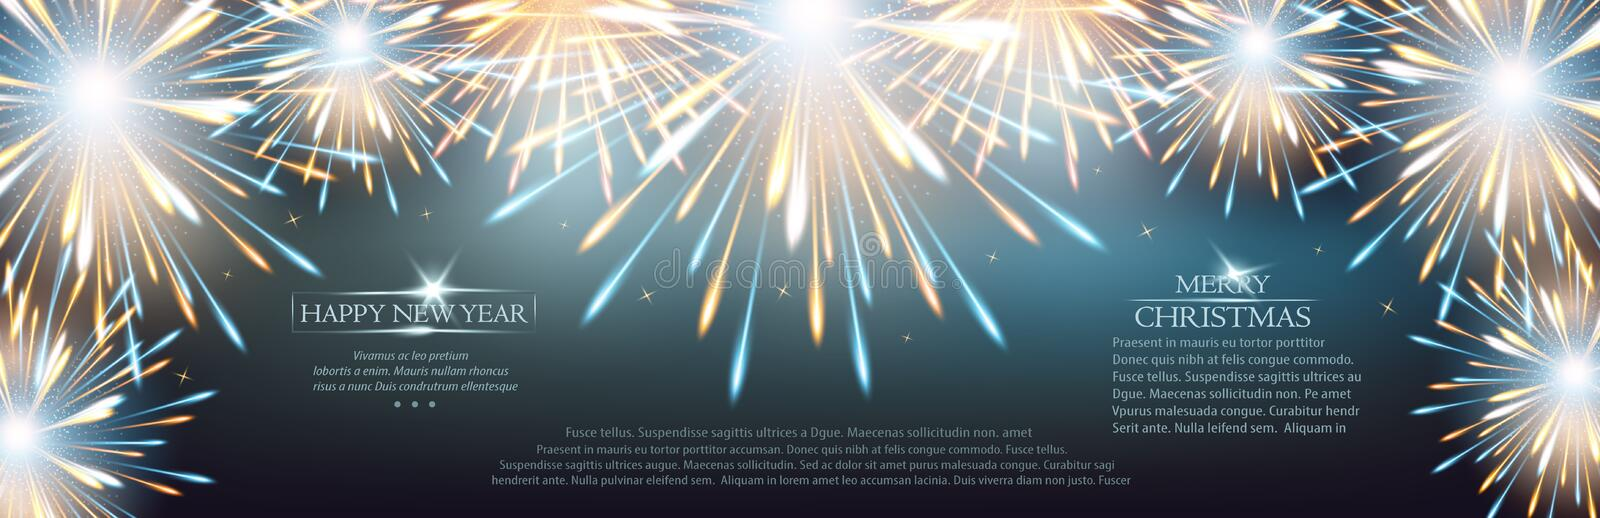 Fireworks explosions frame background on greeting card to the Happy New Year vector illustration